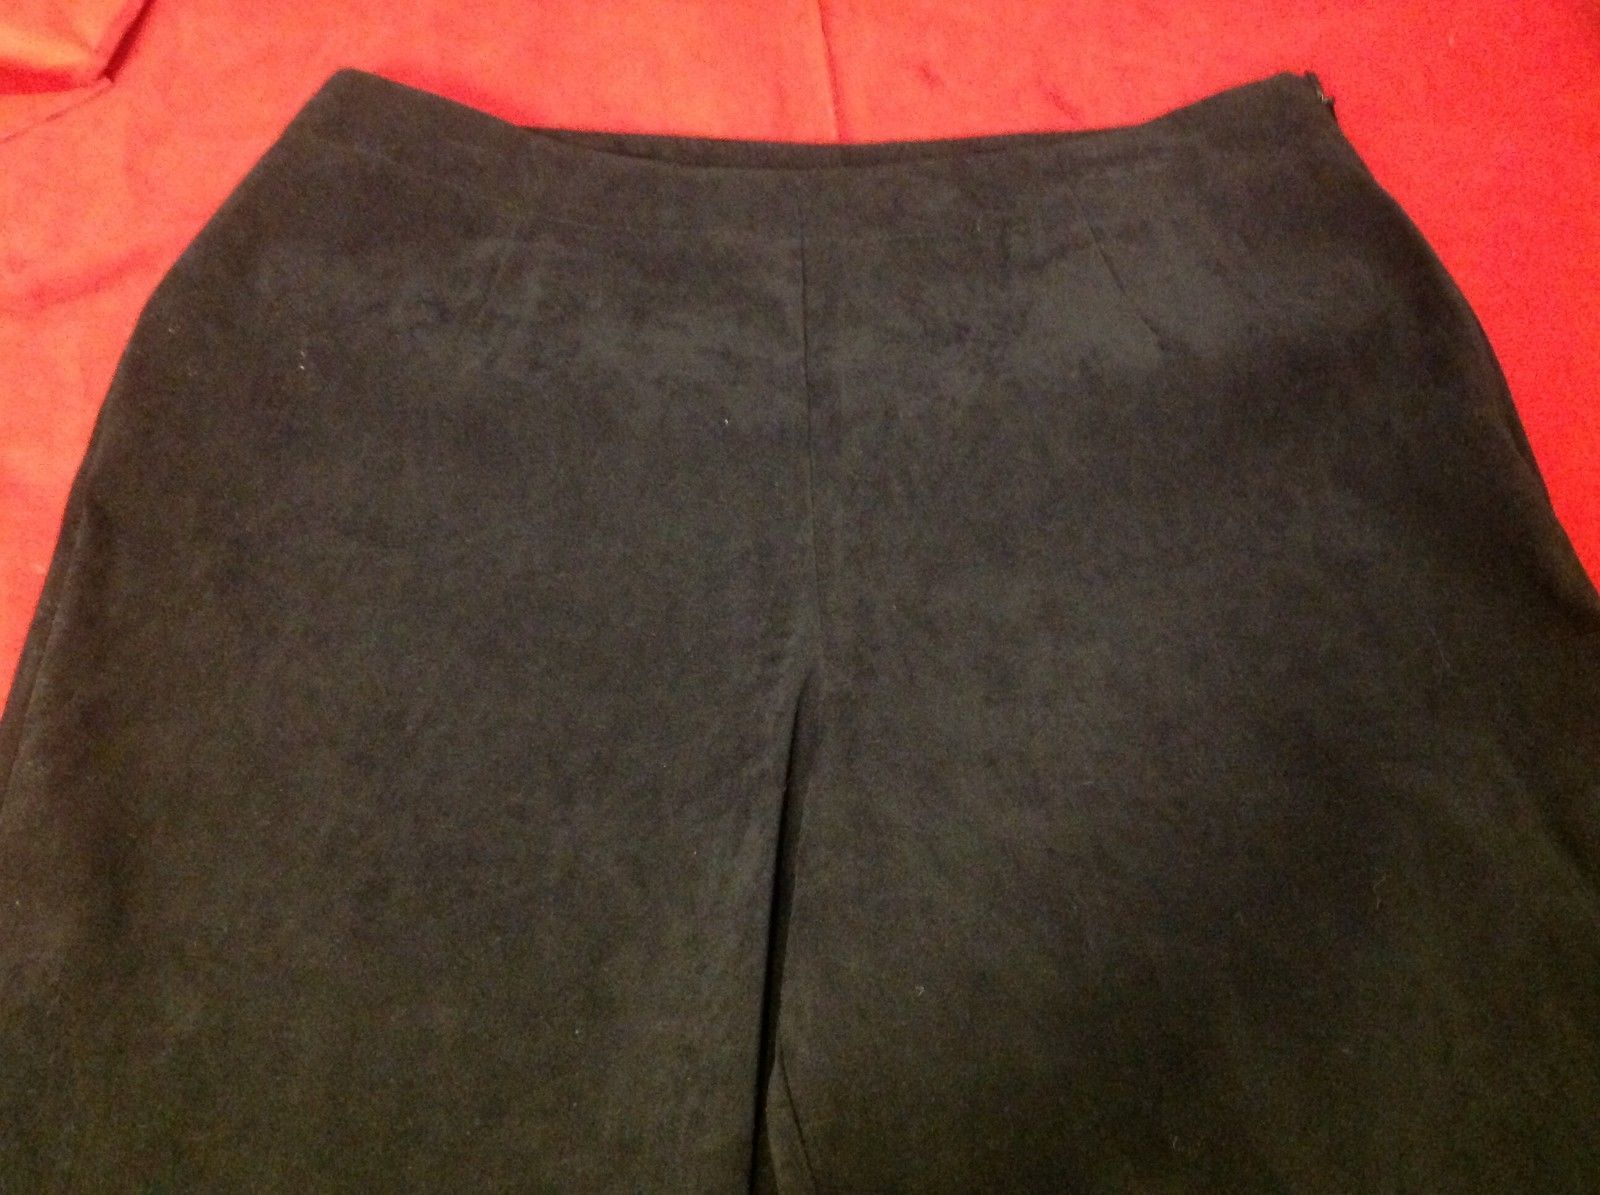 Sag Harbor casual black pants size 10 P petite